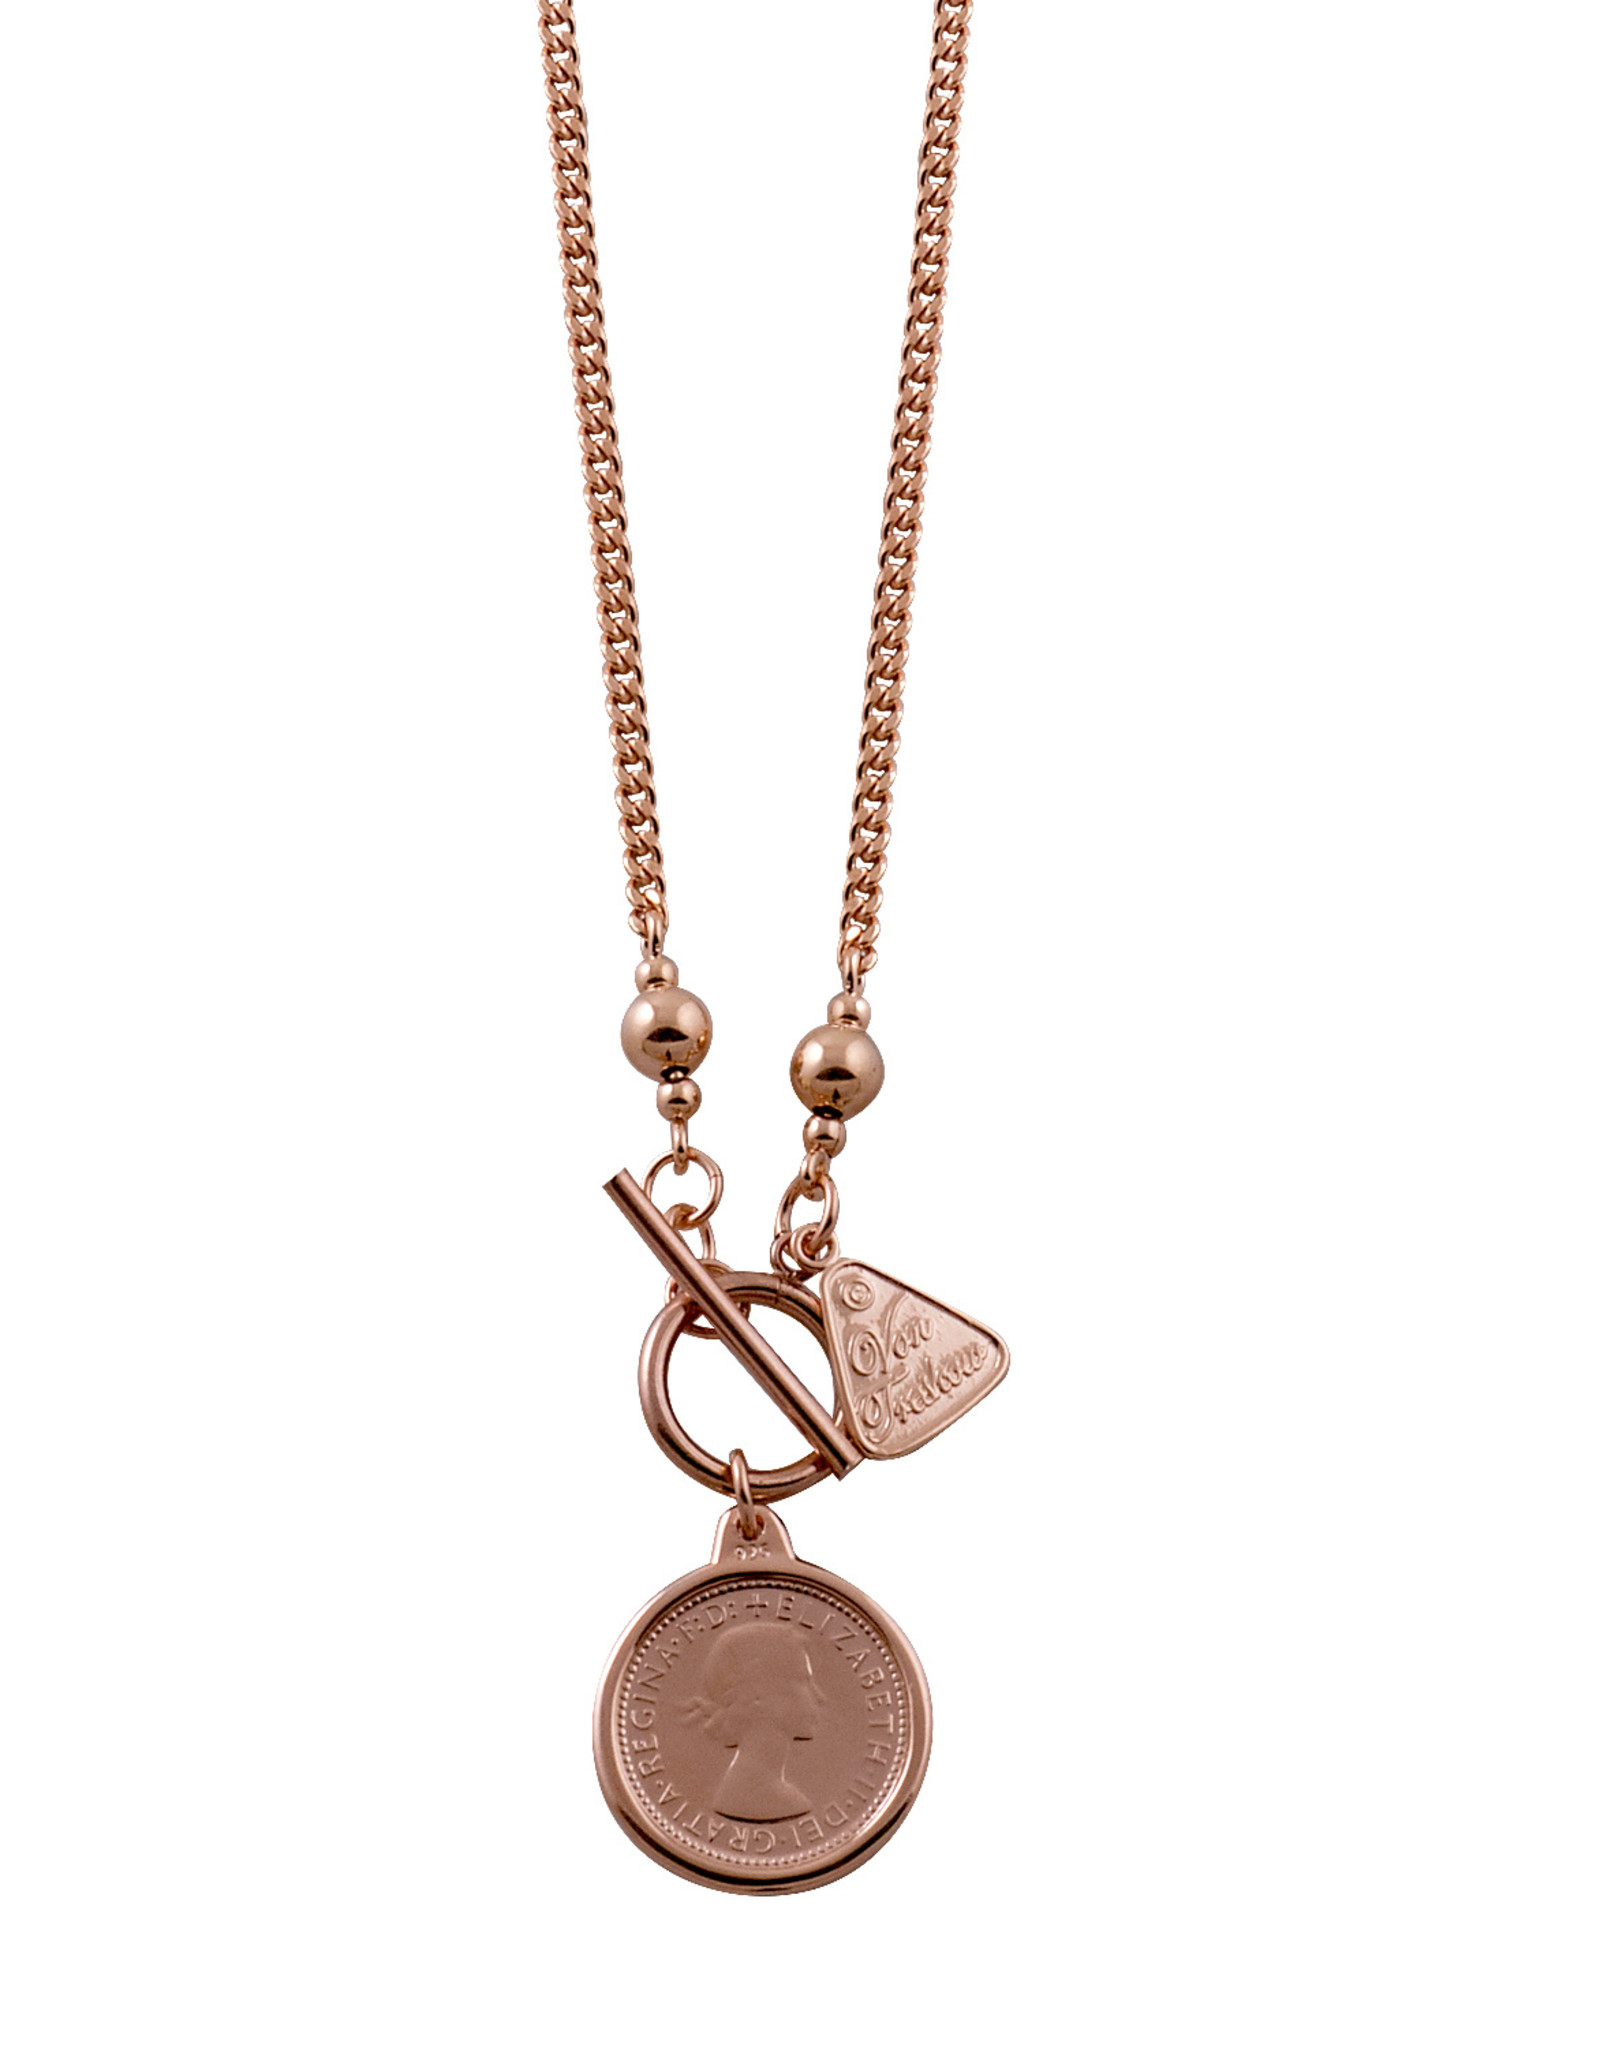 VON TRESKOW R/GOLD CURB NECKLACE WITH SIXPENCE